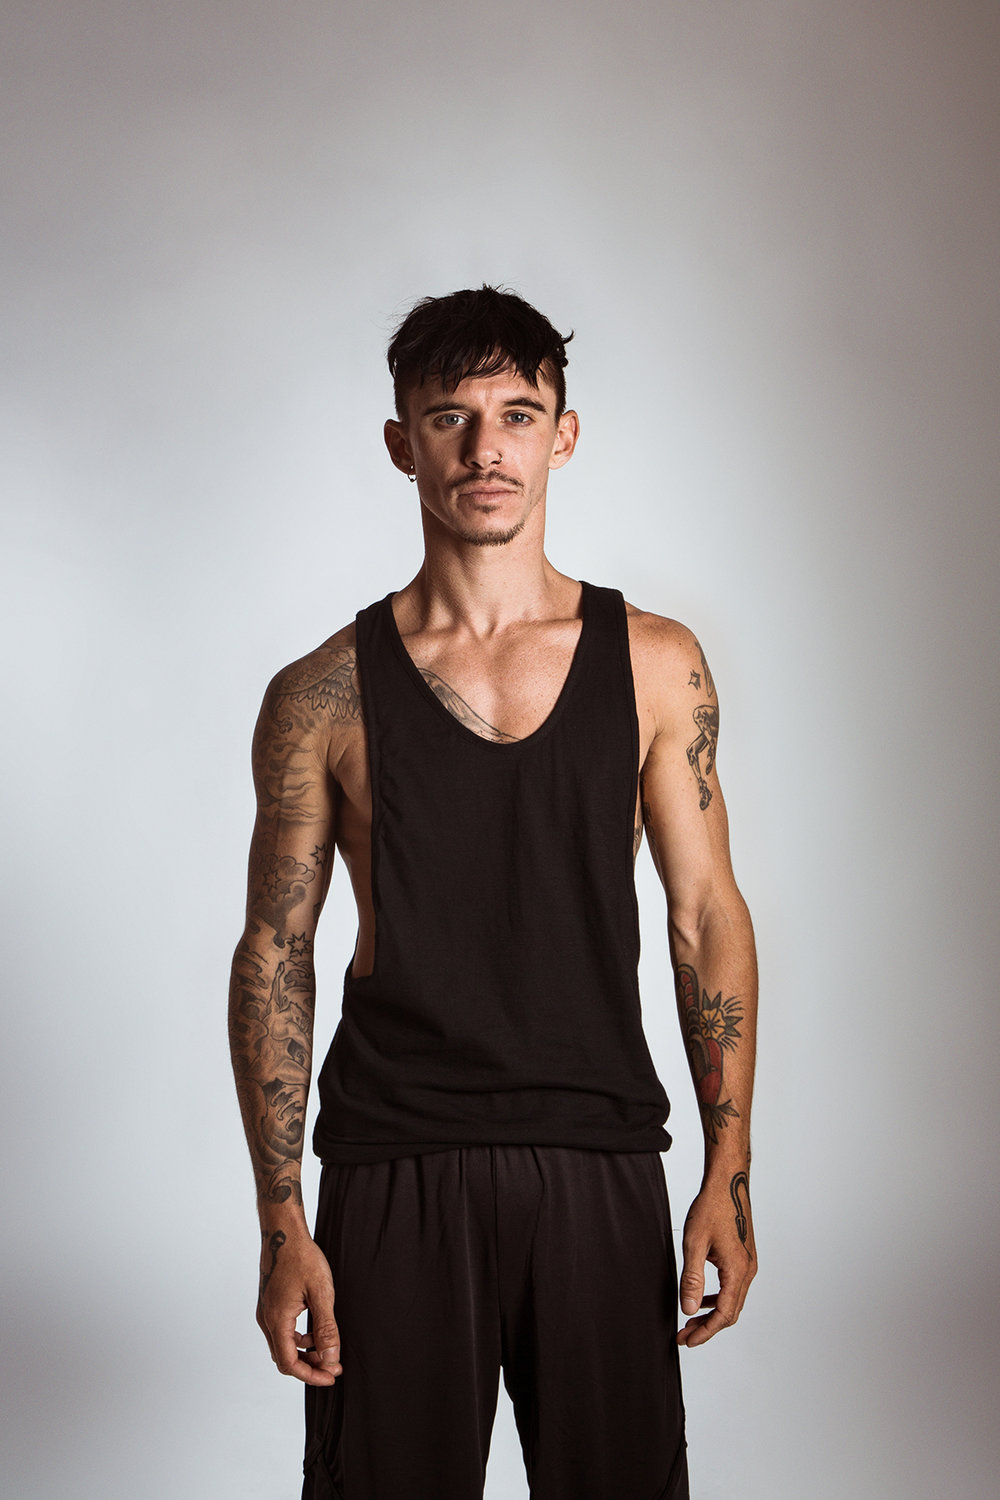 Brad wears the  Men's Cut Away Singlet  and  Urban Short  in Black